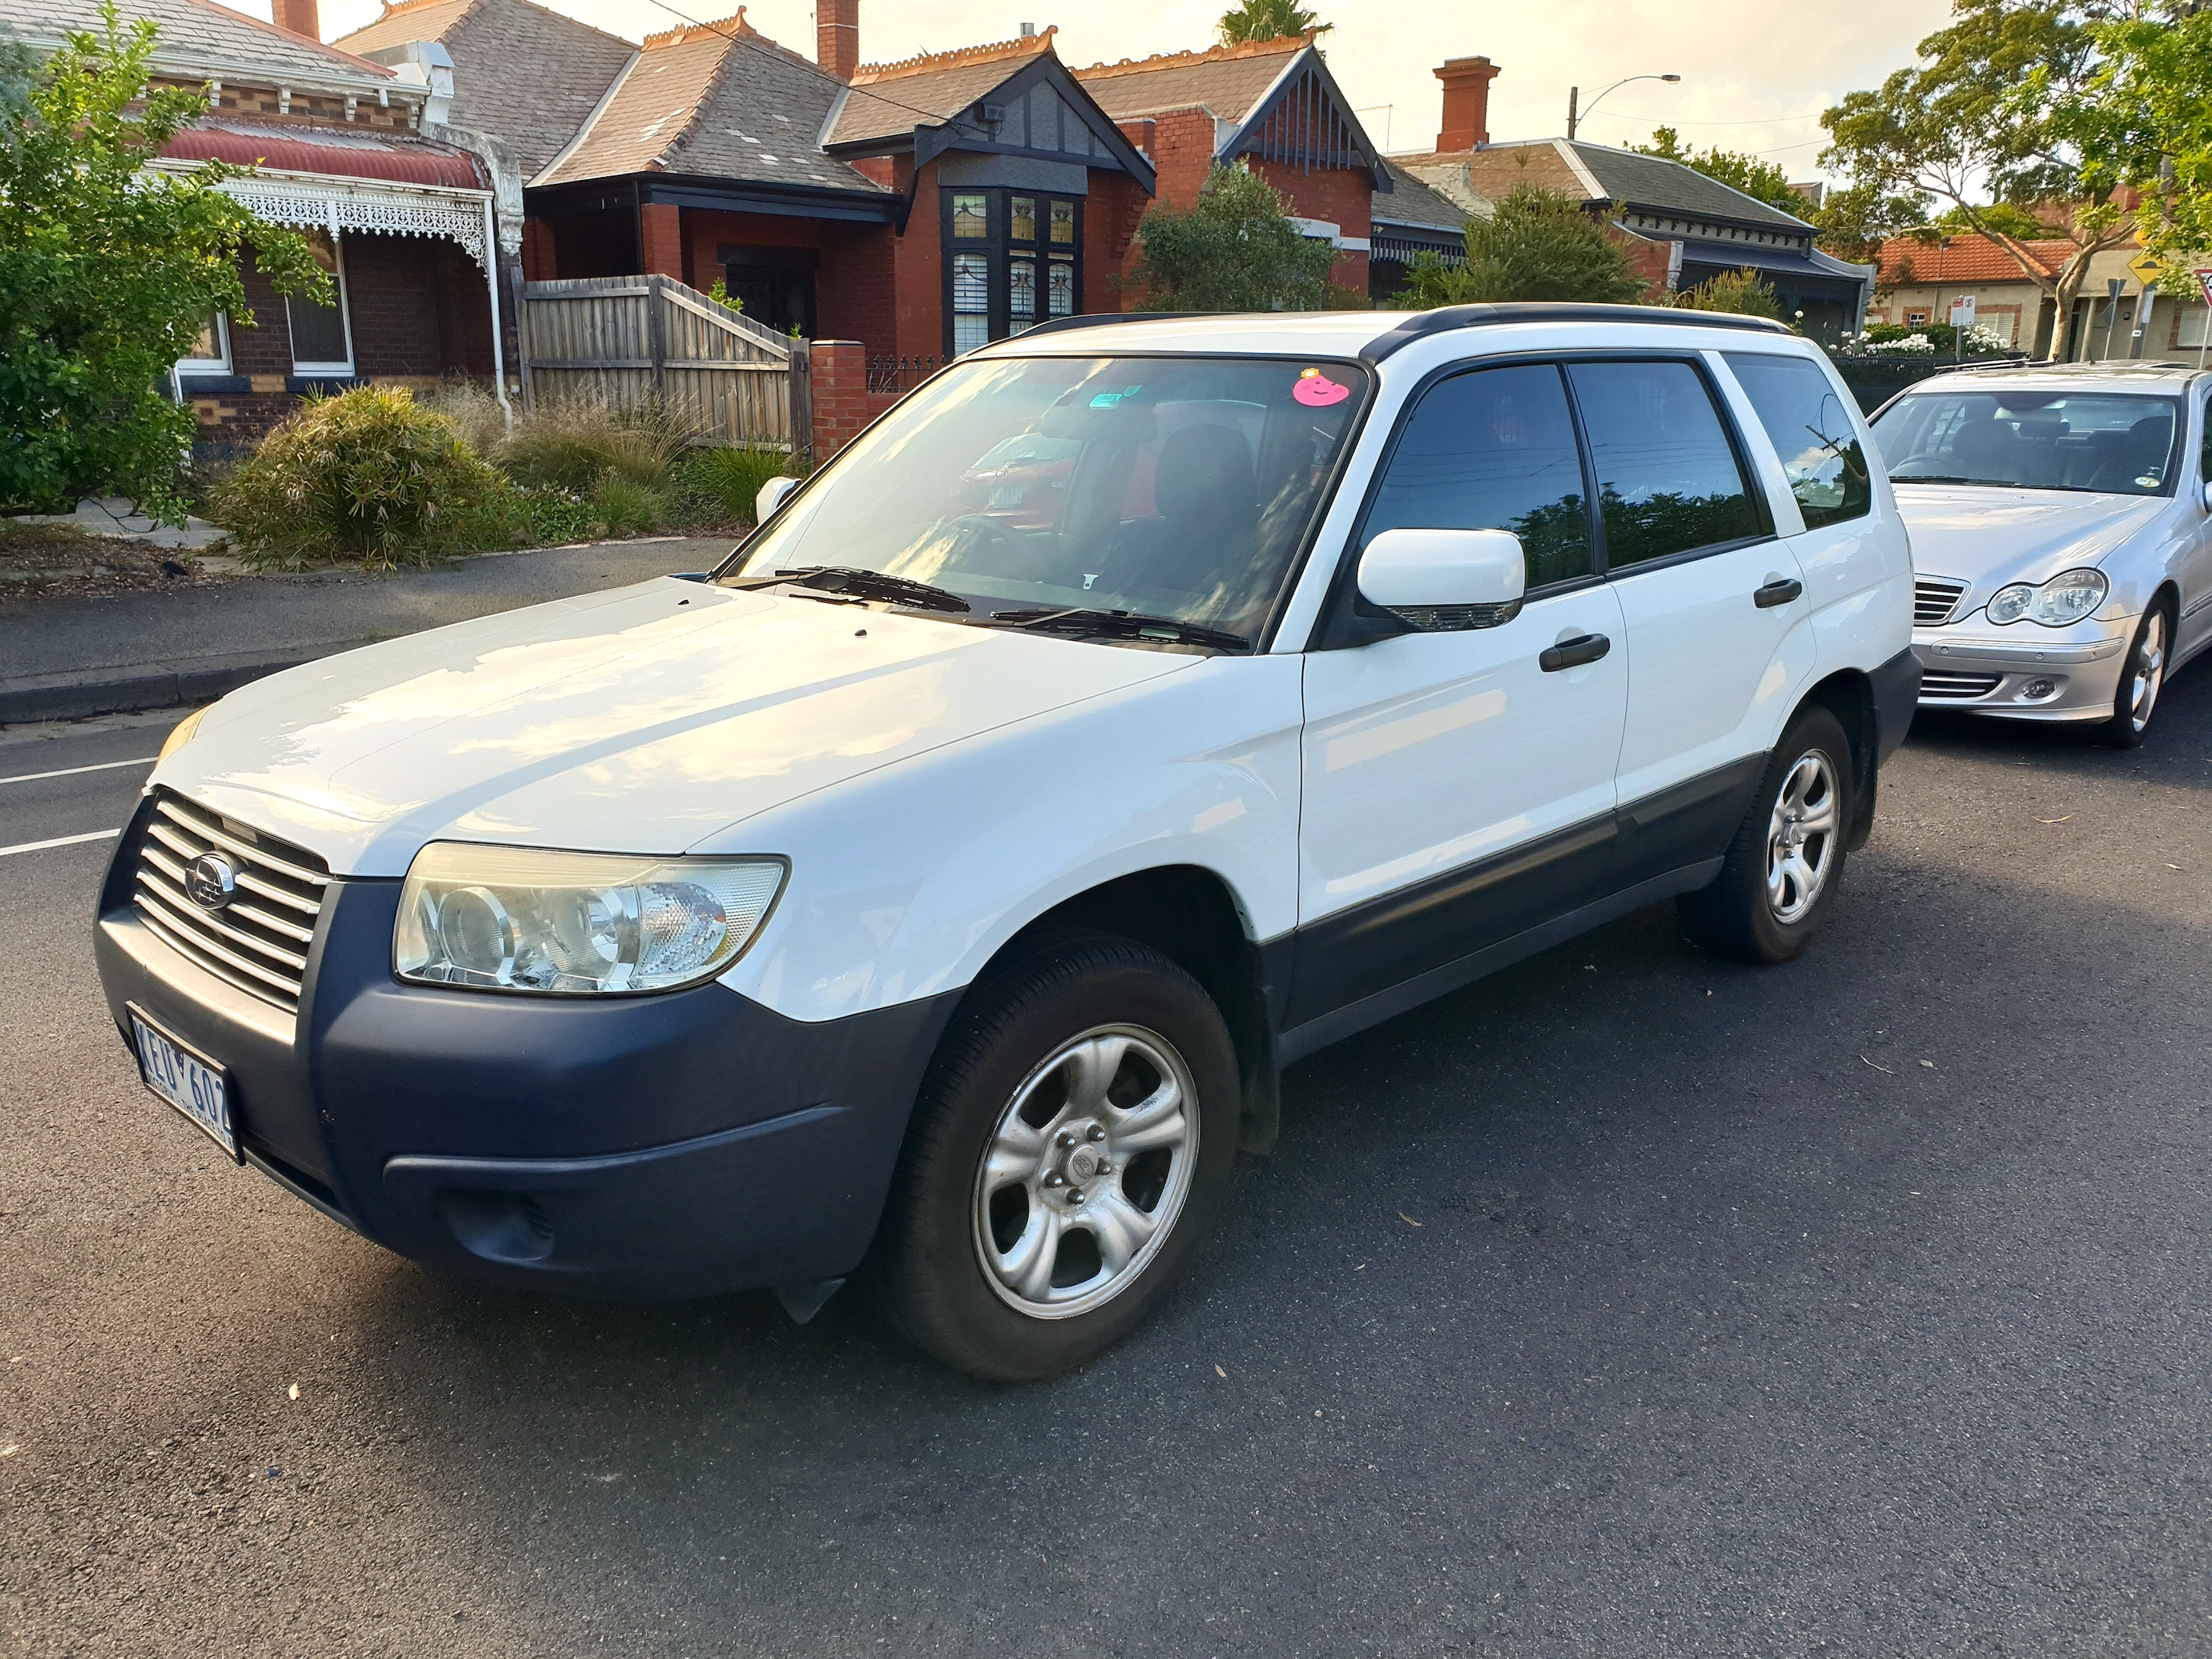 Picture of Elena's 2006 Subaru Forester